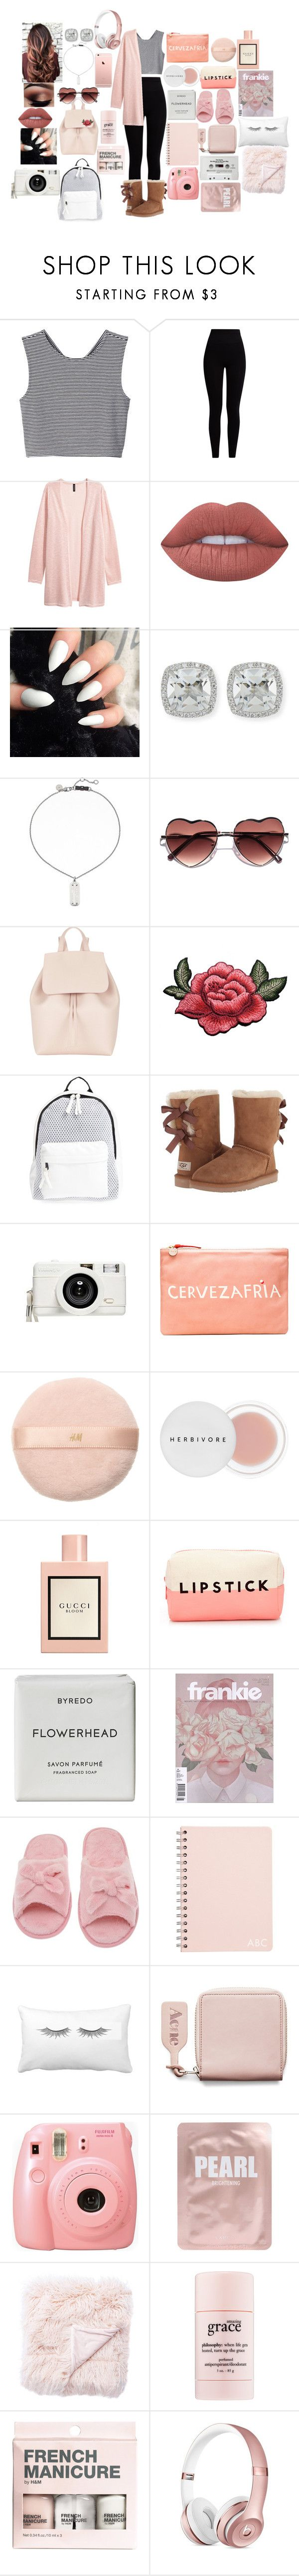 """""""Evangeline Potter"""" by annaconley on Polyvore featuring Monki, Pepper & Mayne, Lime Crime, Frederic Sage, Marc by Marc Jacobs, Mansur Gavriel, Poverty Flats, UGG Australia, Lomography and Clare V."""